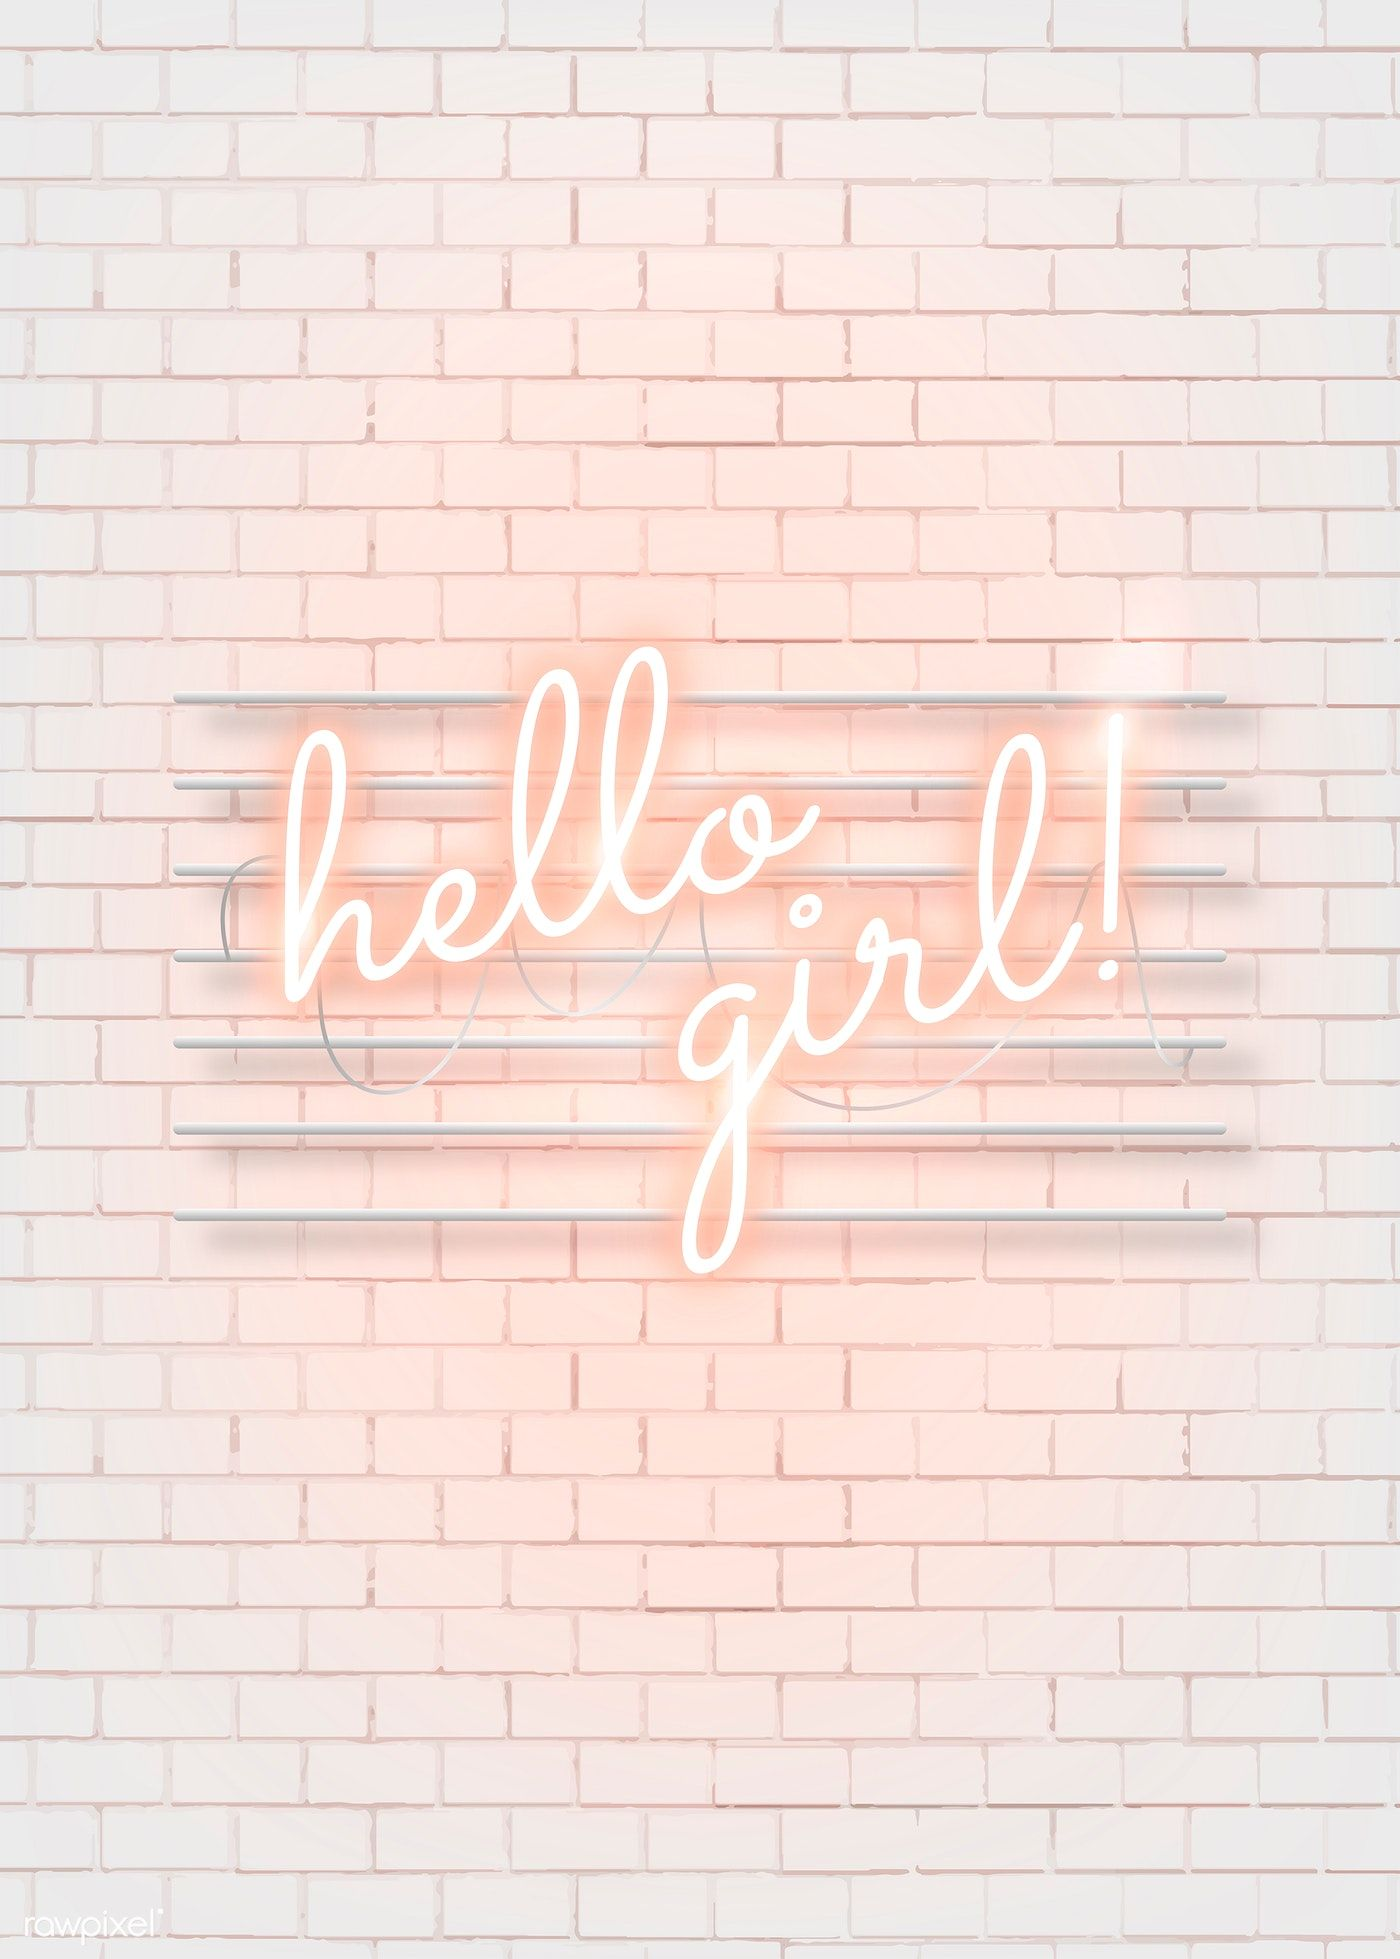 Hello girl neon word on a white brick wall vector | premium image by rawpixel.com / manotang